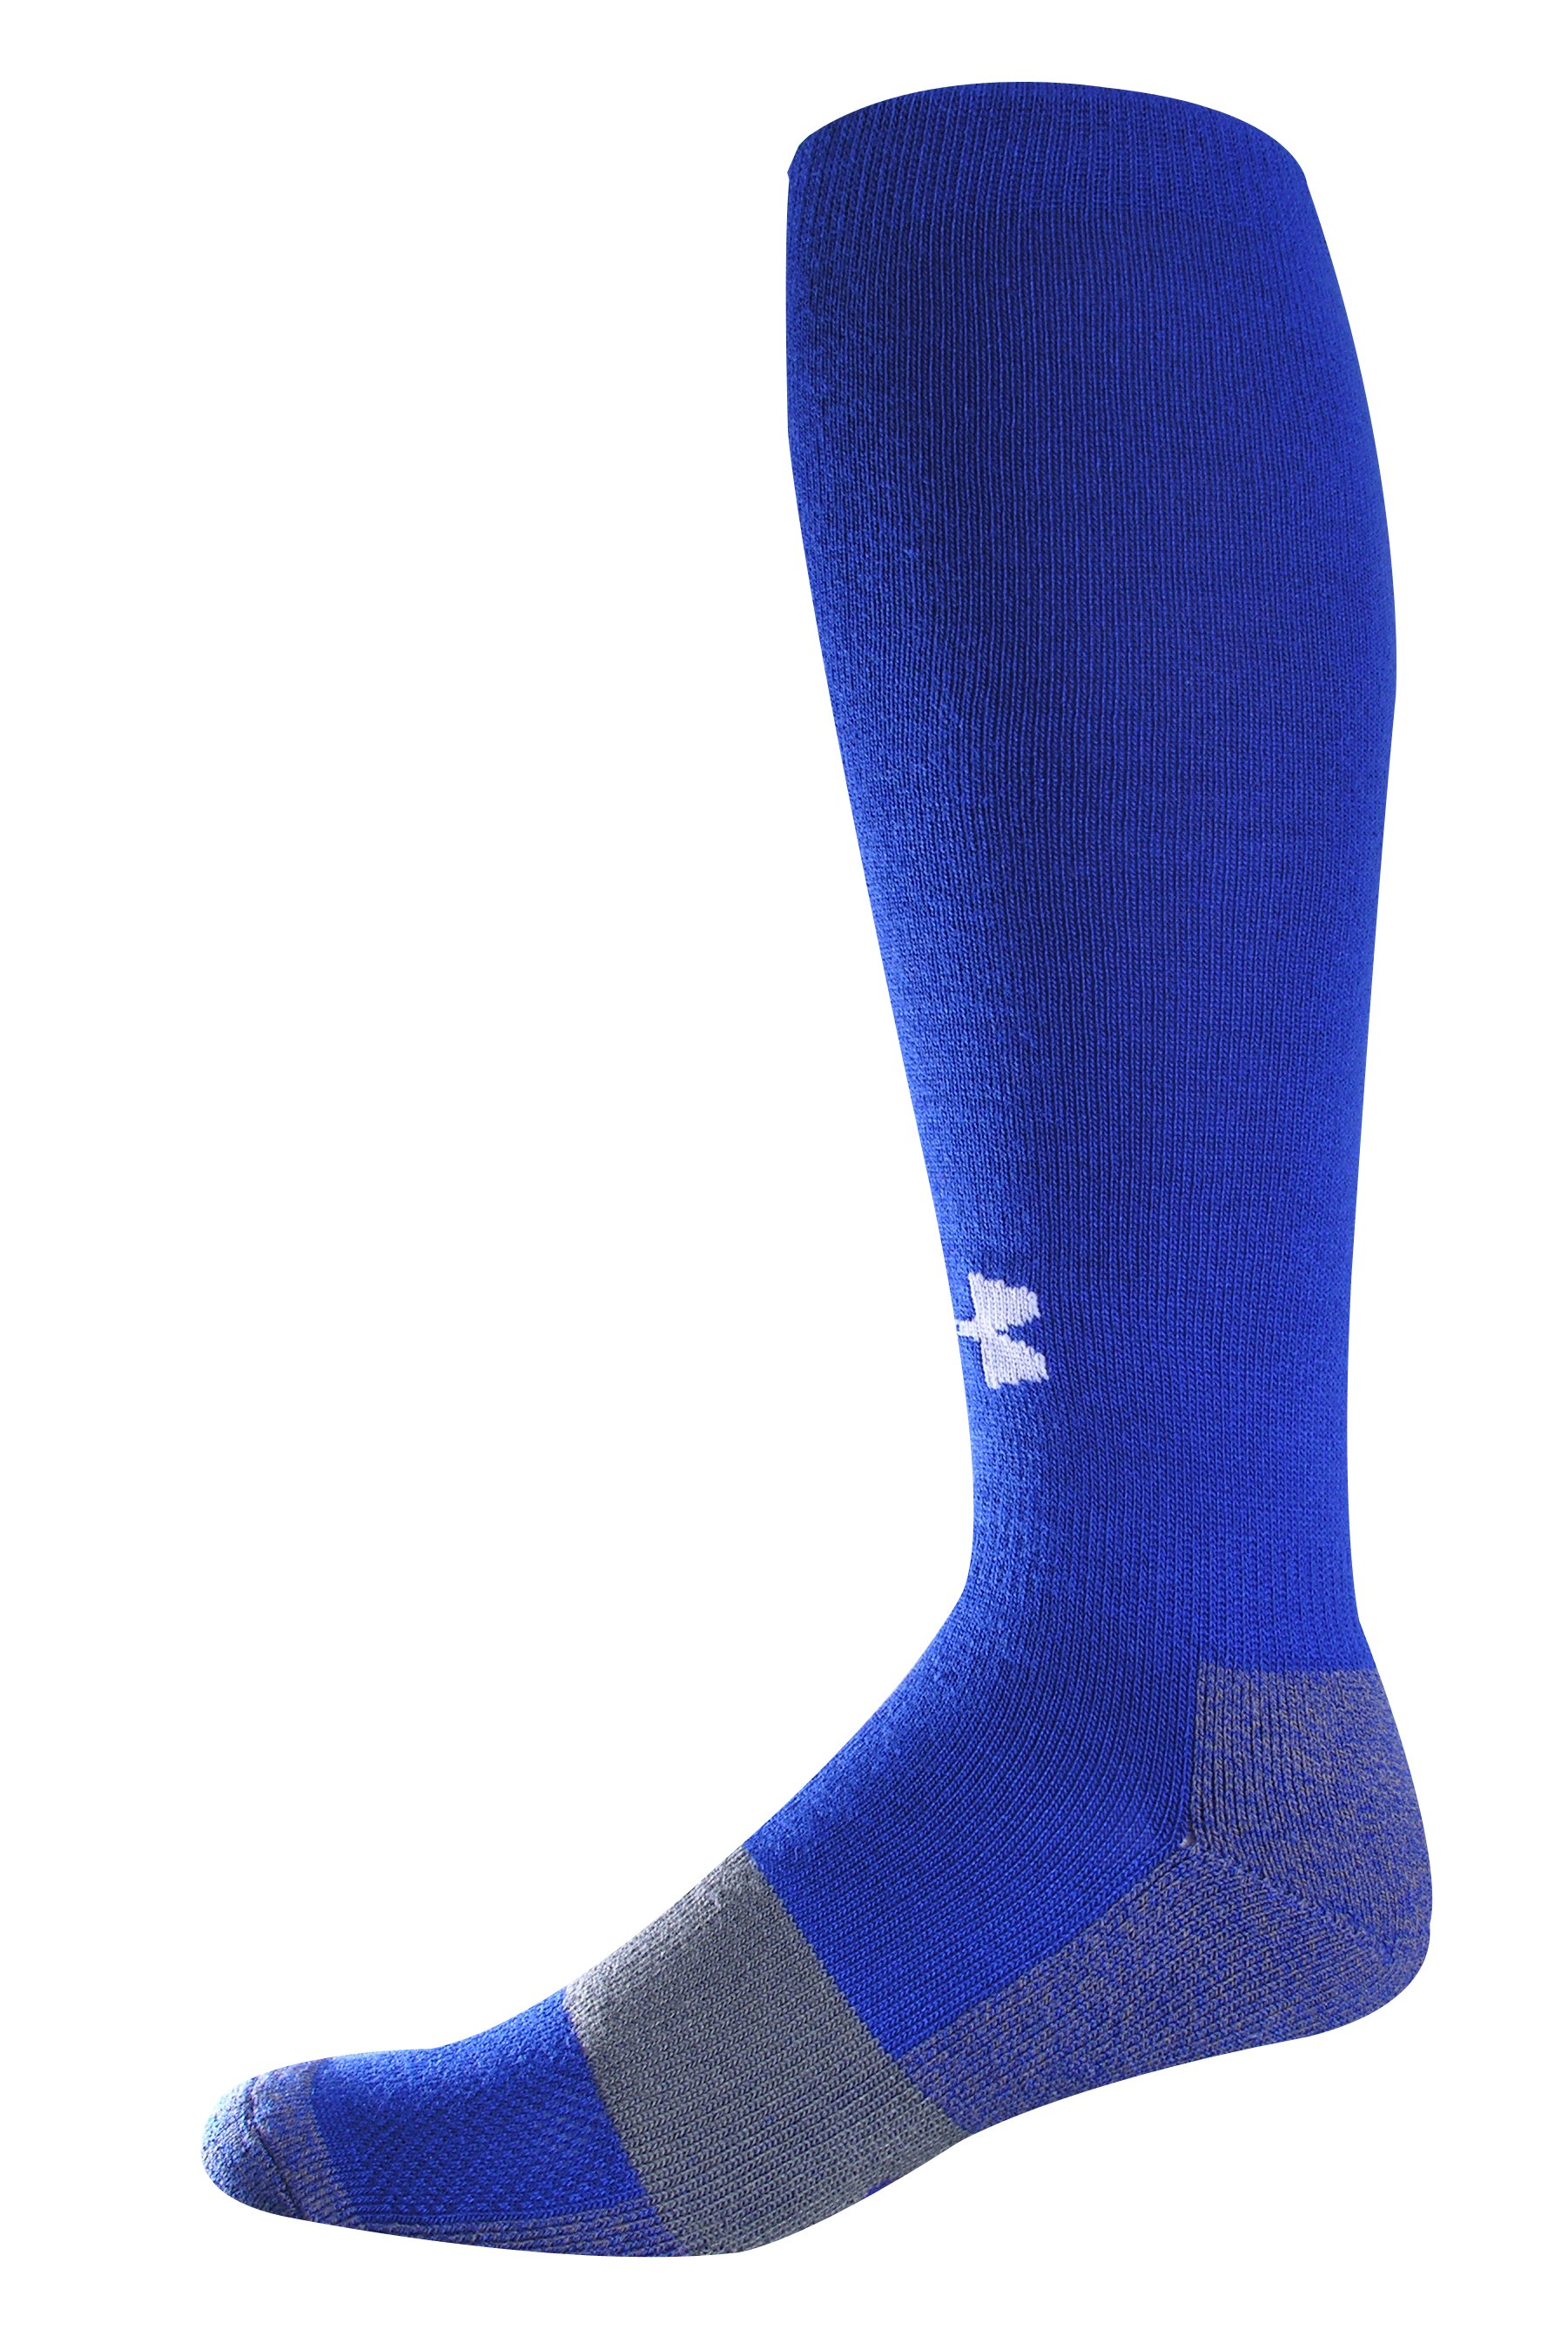 Men's Football Charged Cotton® OTC Socks, Royal, zoomed image